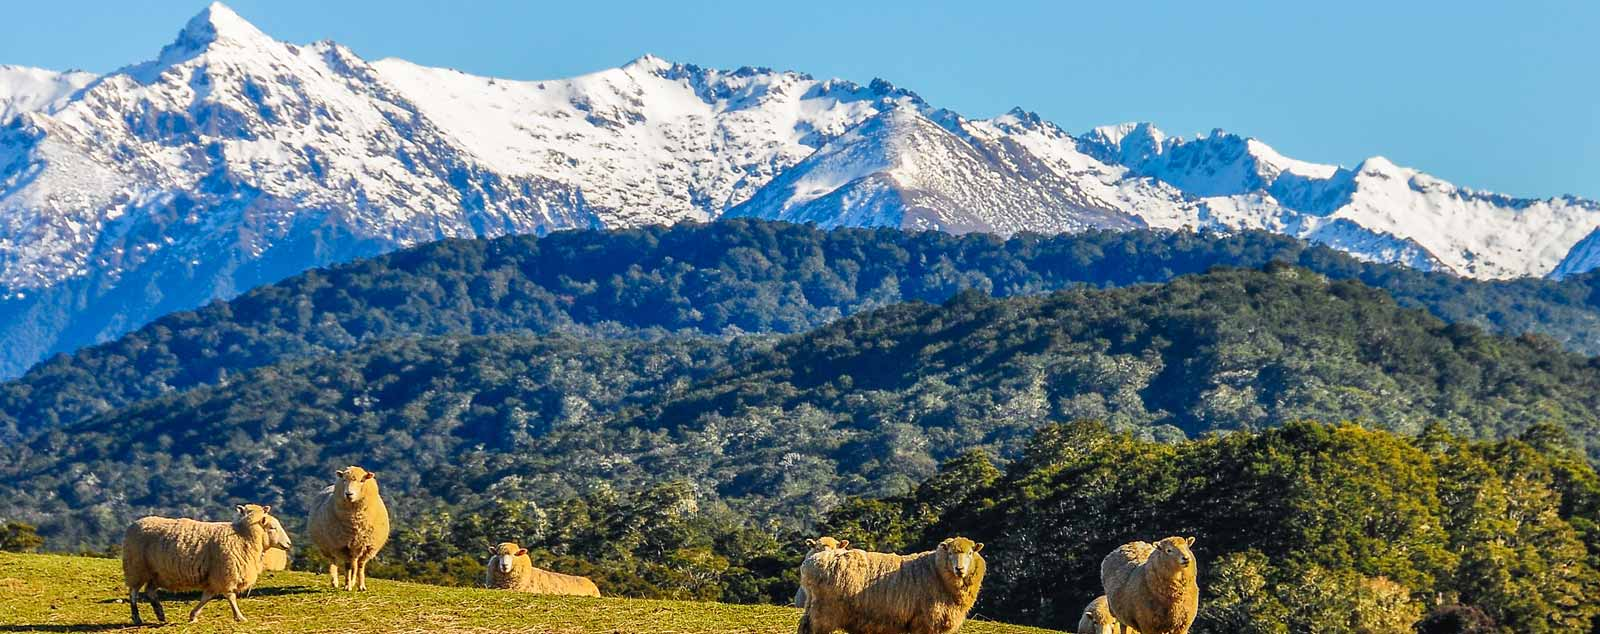 Fluffy sheep stand on a green knoll in front of dense forest and snow topped mountains in the far distance